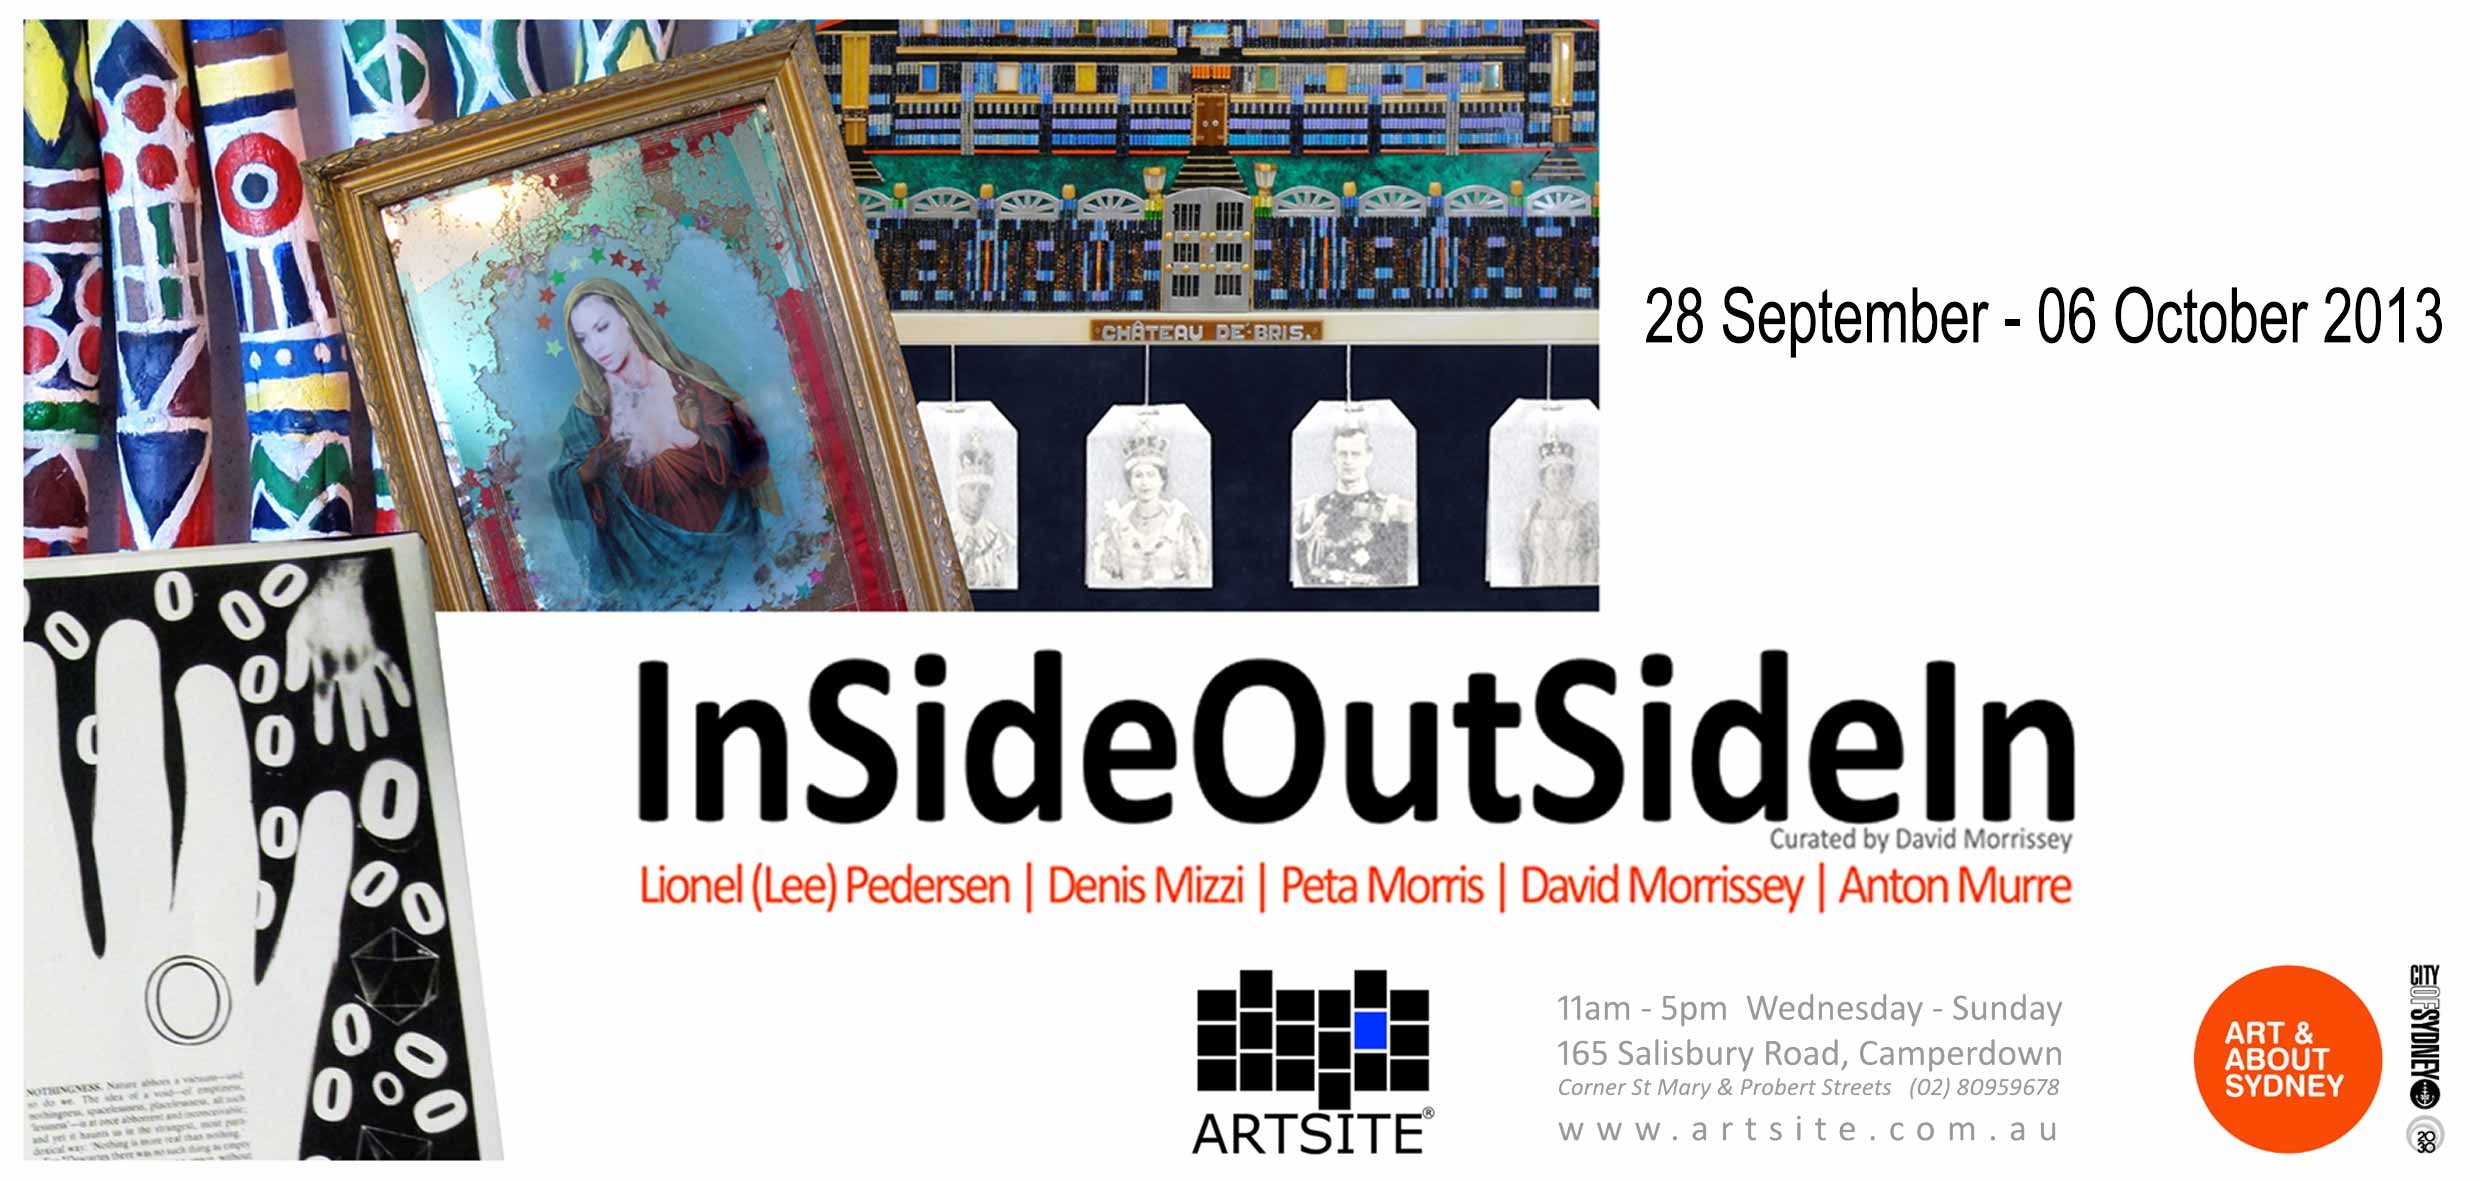 View Exhibition at Artsite Gallery, Sydney: 28 September - 06 October 2013. InSideOutSideIn - Outsider Semantics. Curated by David Morrissey